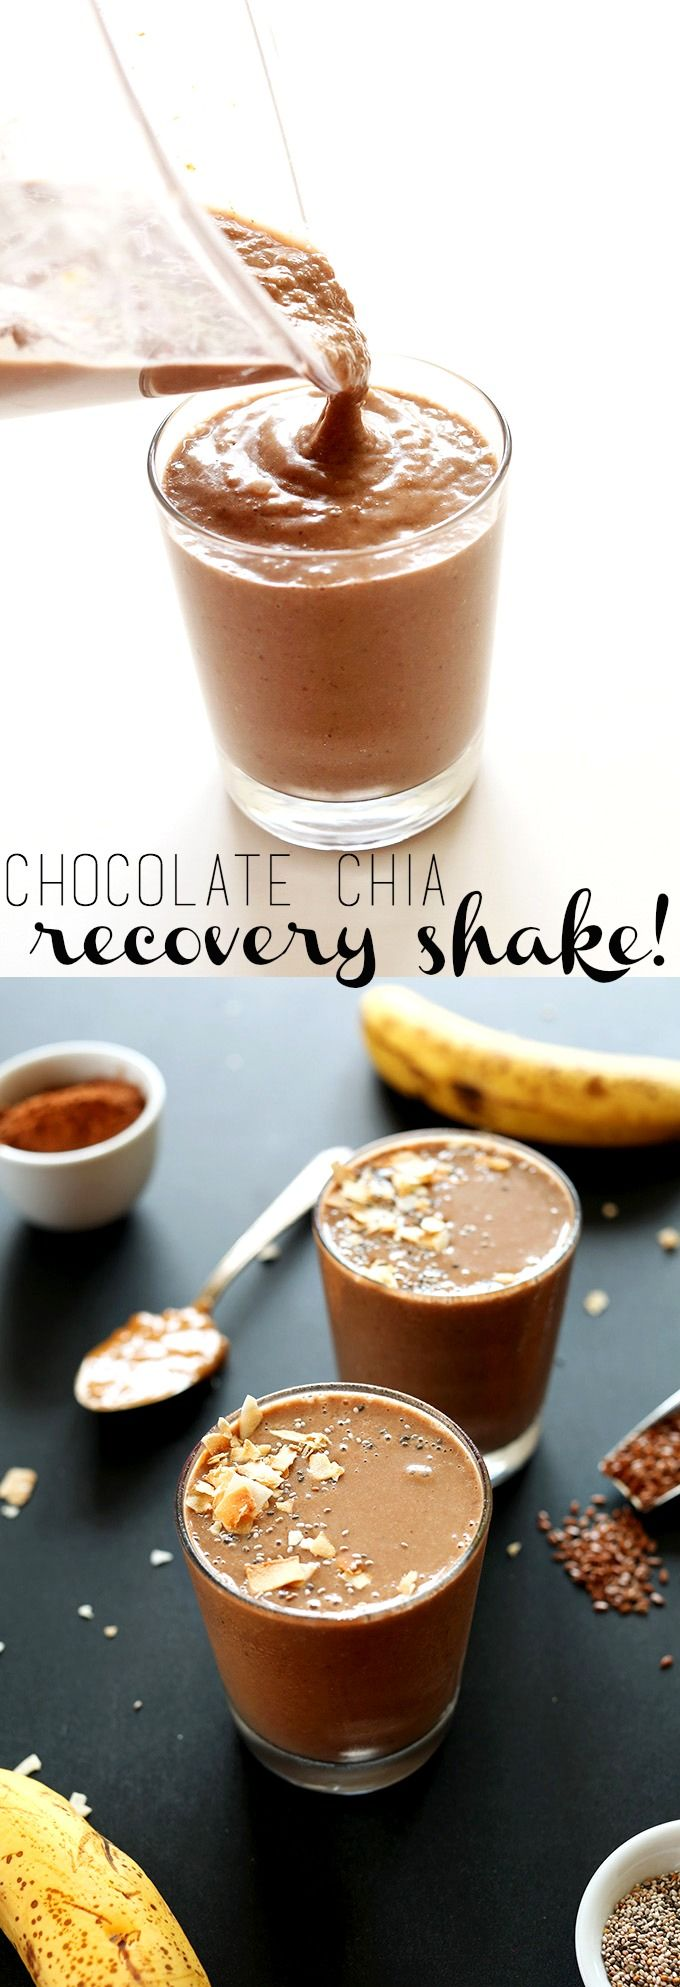 Chocolate chia shake